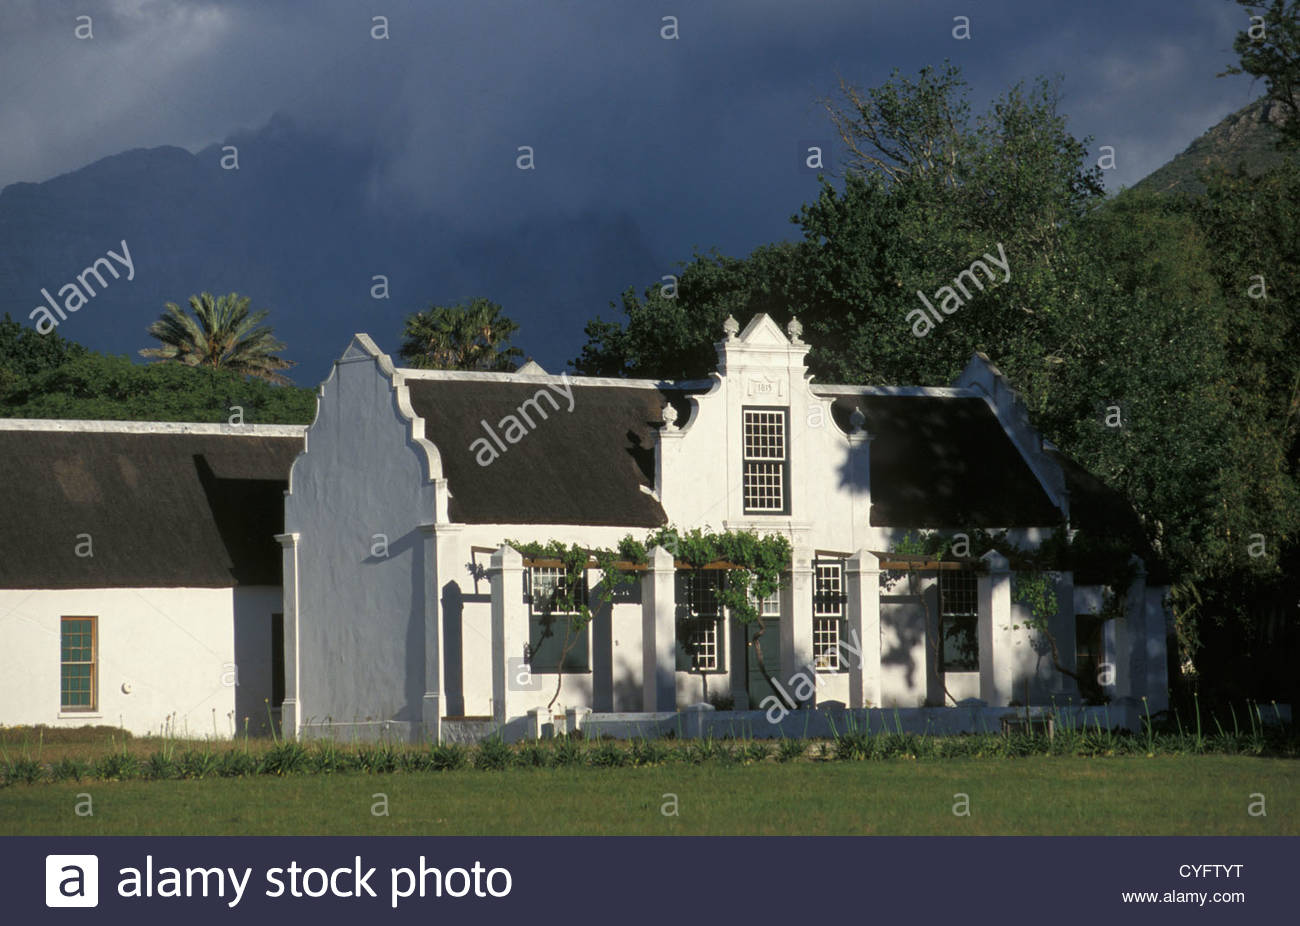 South Africa, Western Cape Province, Stellenbosch, winelands near Cape Town, House. Architecture, Cape Dutch Style - Stock Image